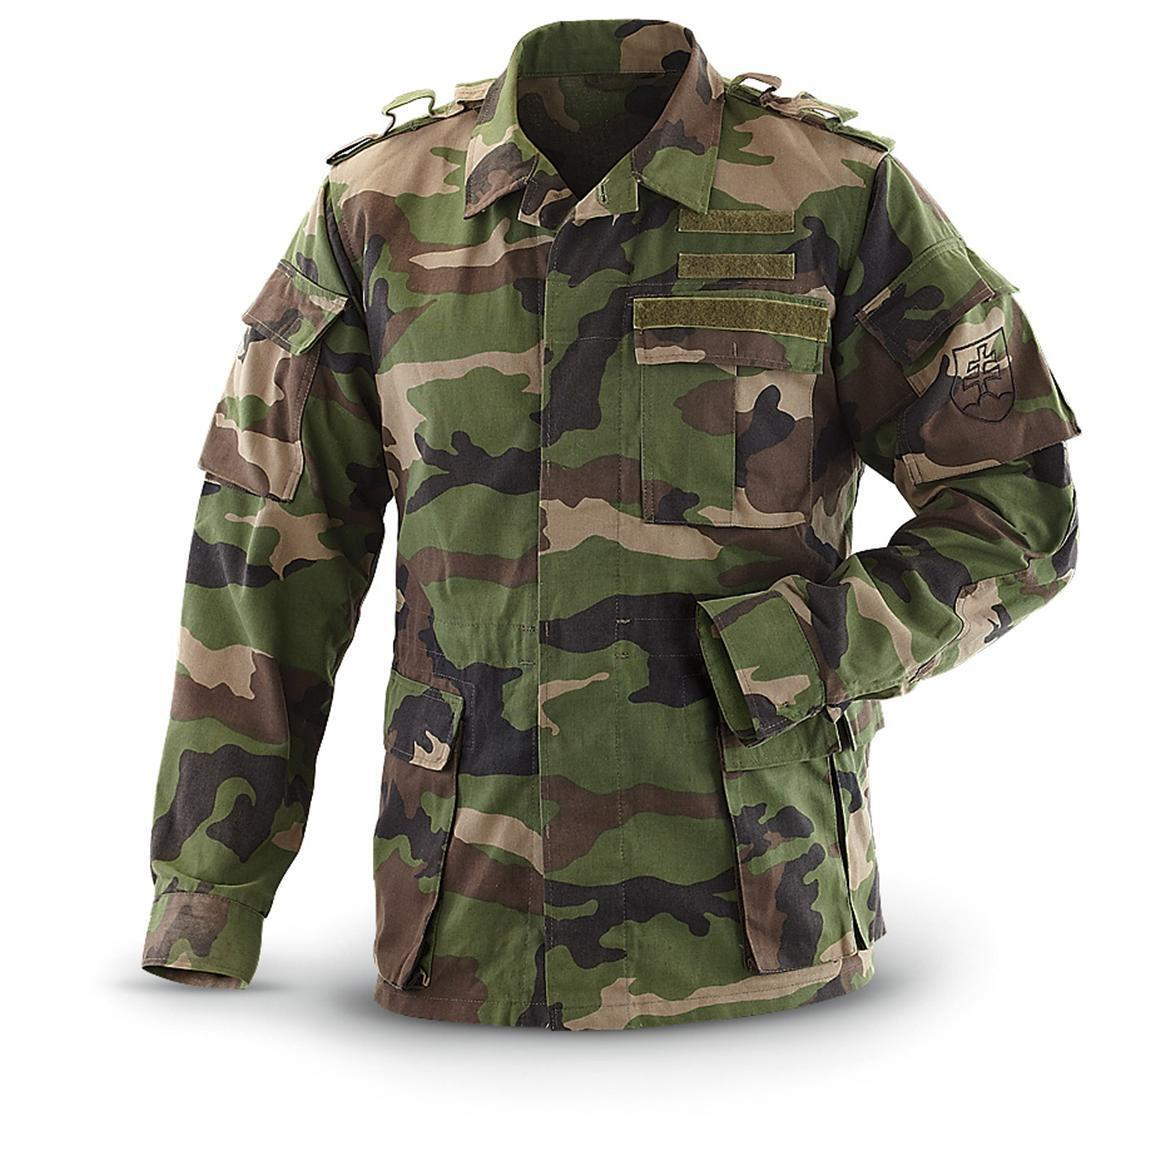 Genuine CZECH SLOVAKIAN Army M97 UNLINED Woodland Camo Field Jacket GRADE  1. Grade 2 condition available with visible repair. 0332d409701